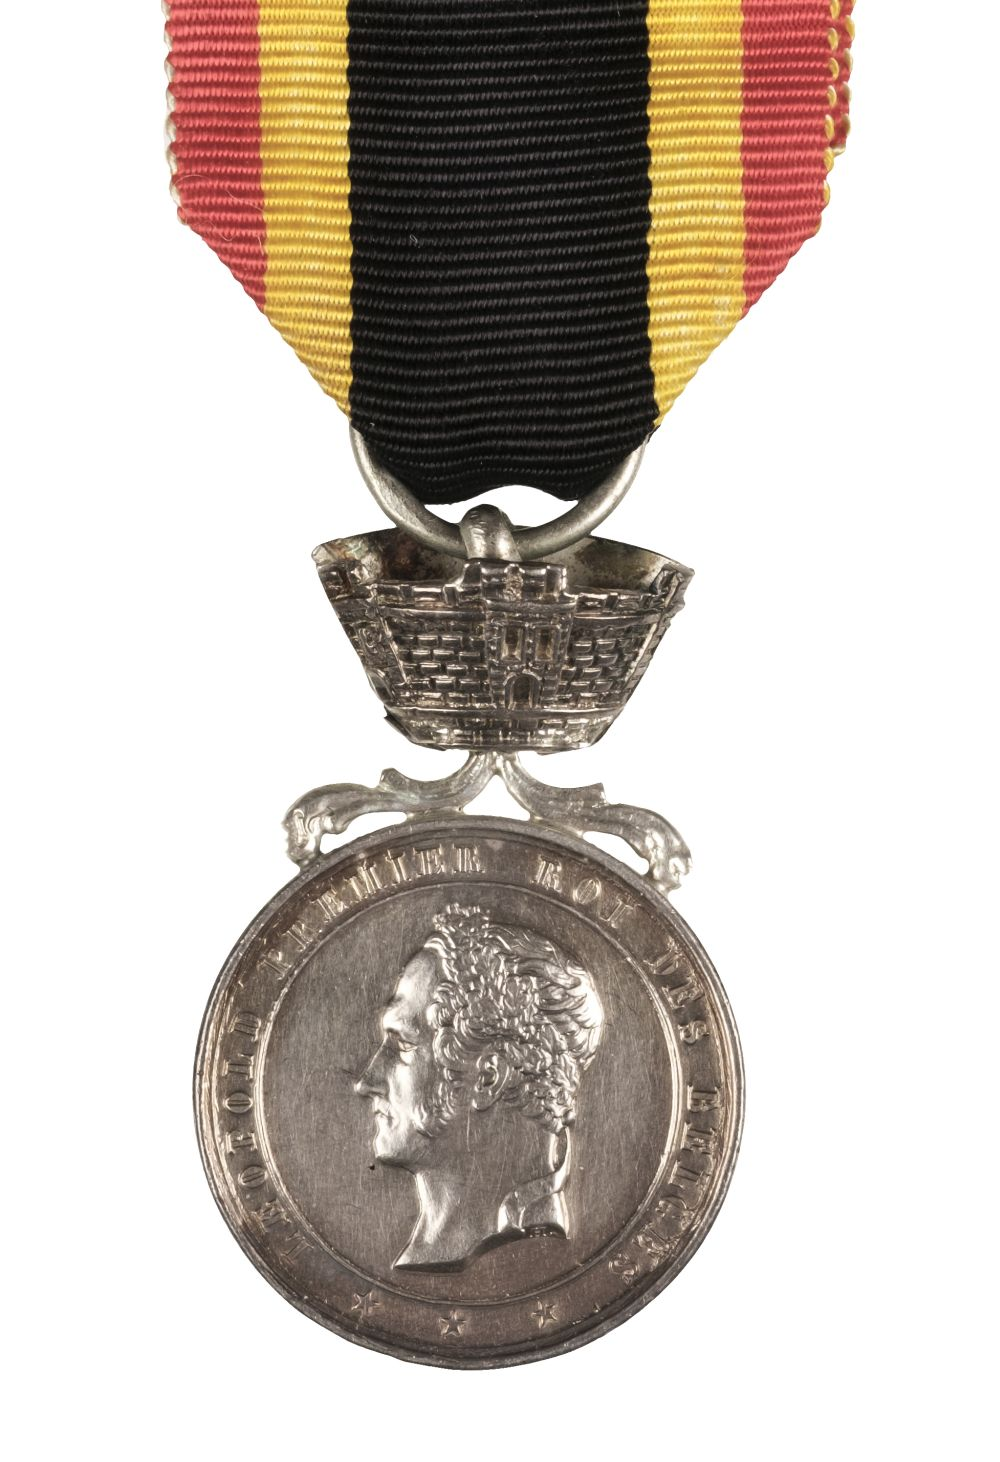 * Belgium. Medal for Bravery, Devotion, and Humanity